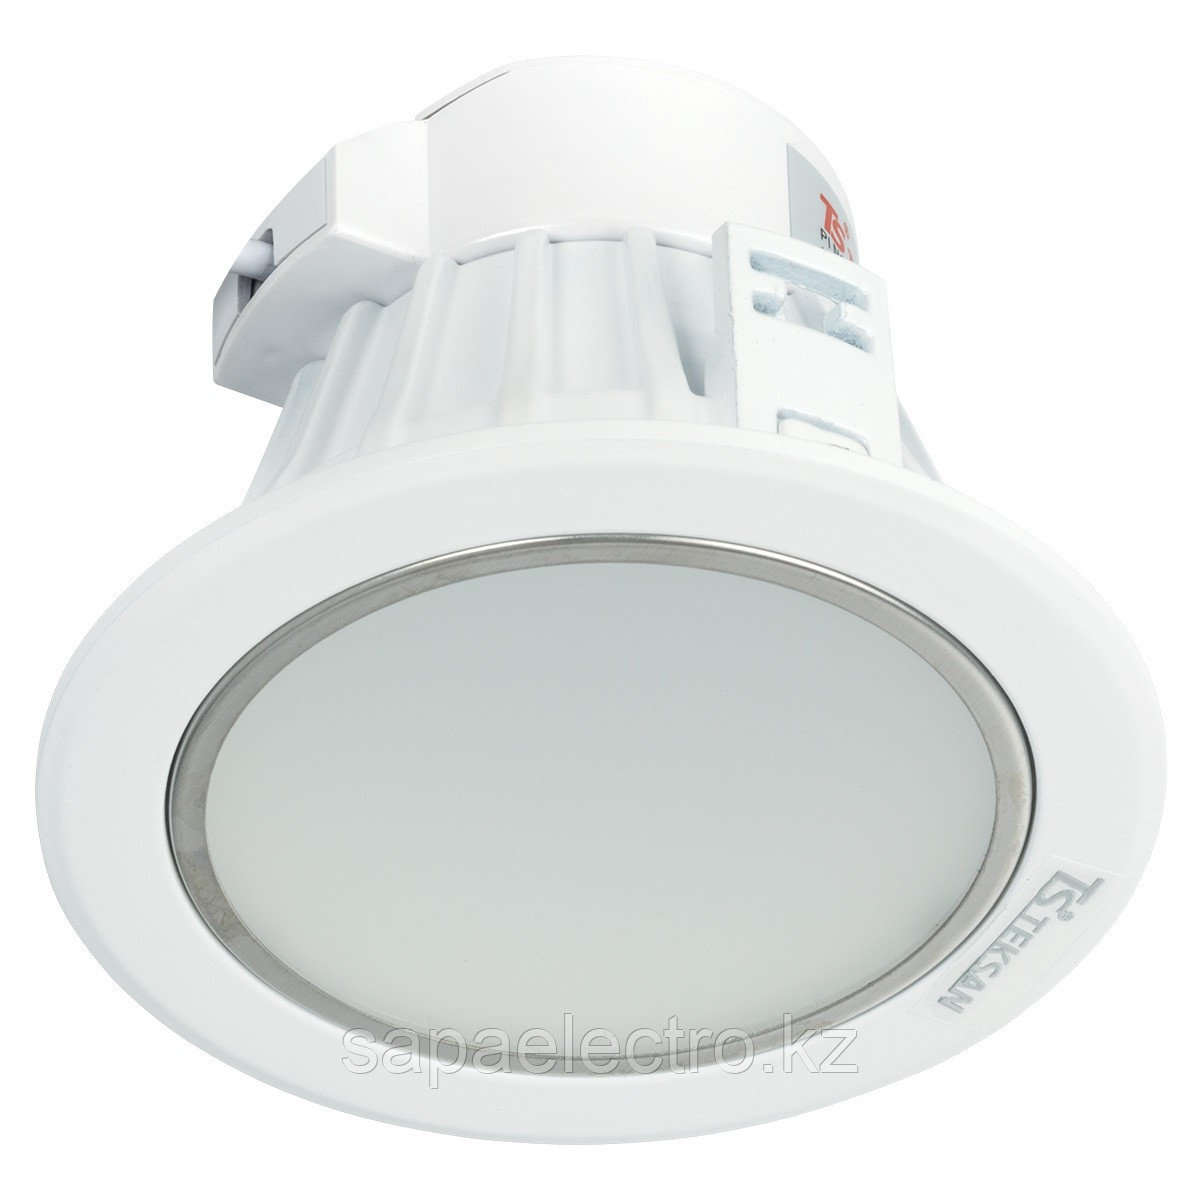 Свет-к DOWNLIGHT LED ARES 6W 5000K WHITE (TS)60шт